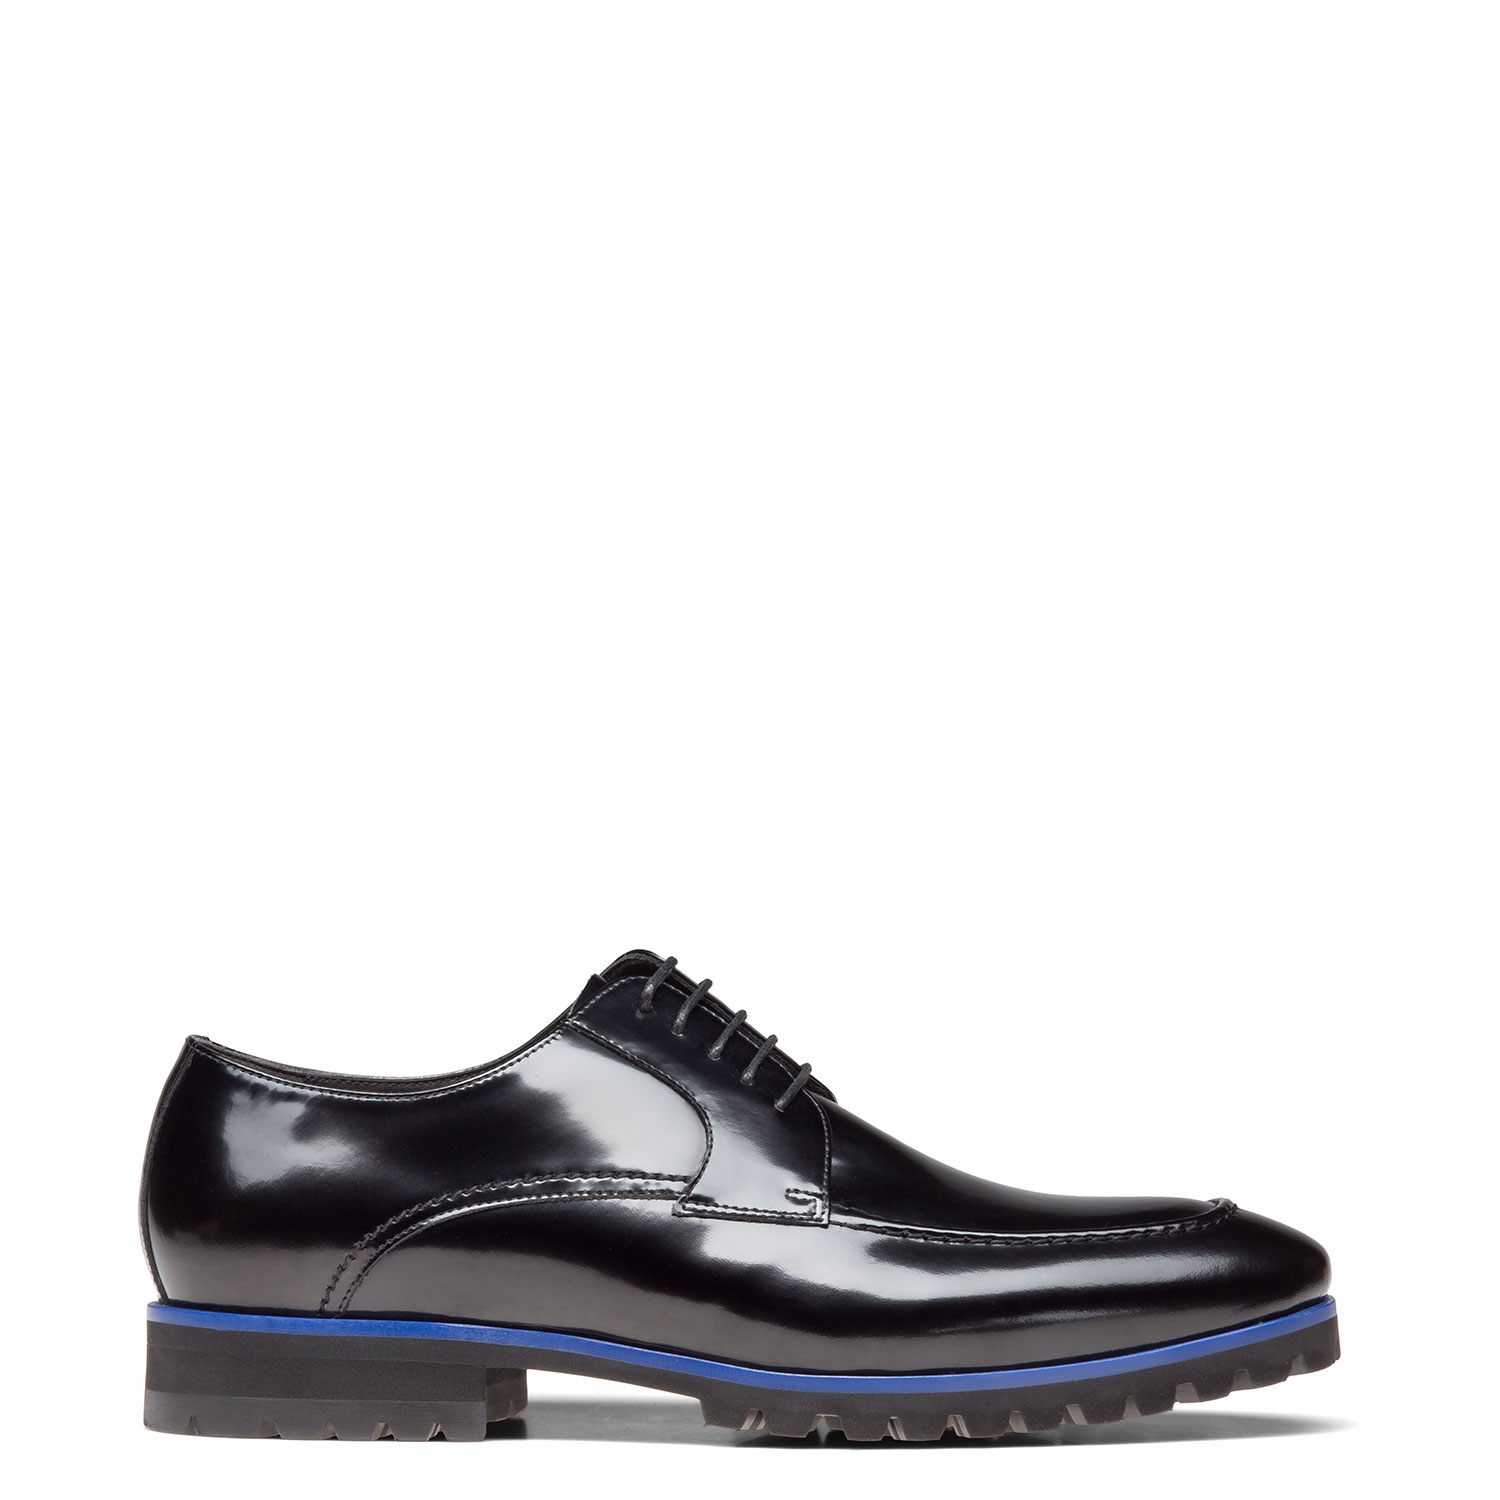 Men's shoes CARLO PAZOLINI HM-PEN2-1